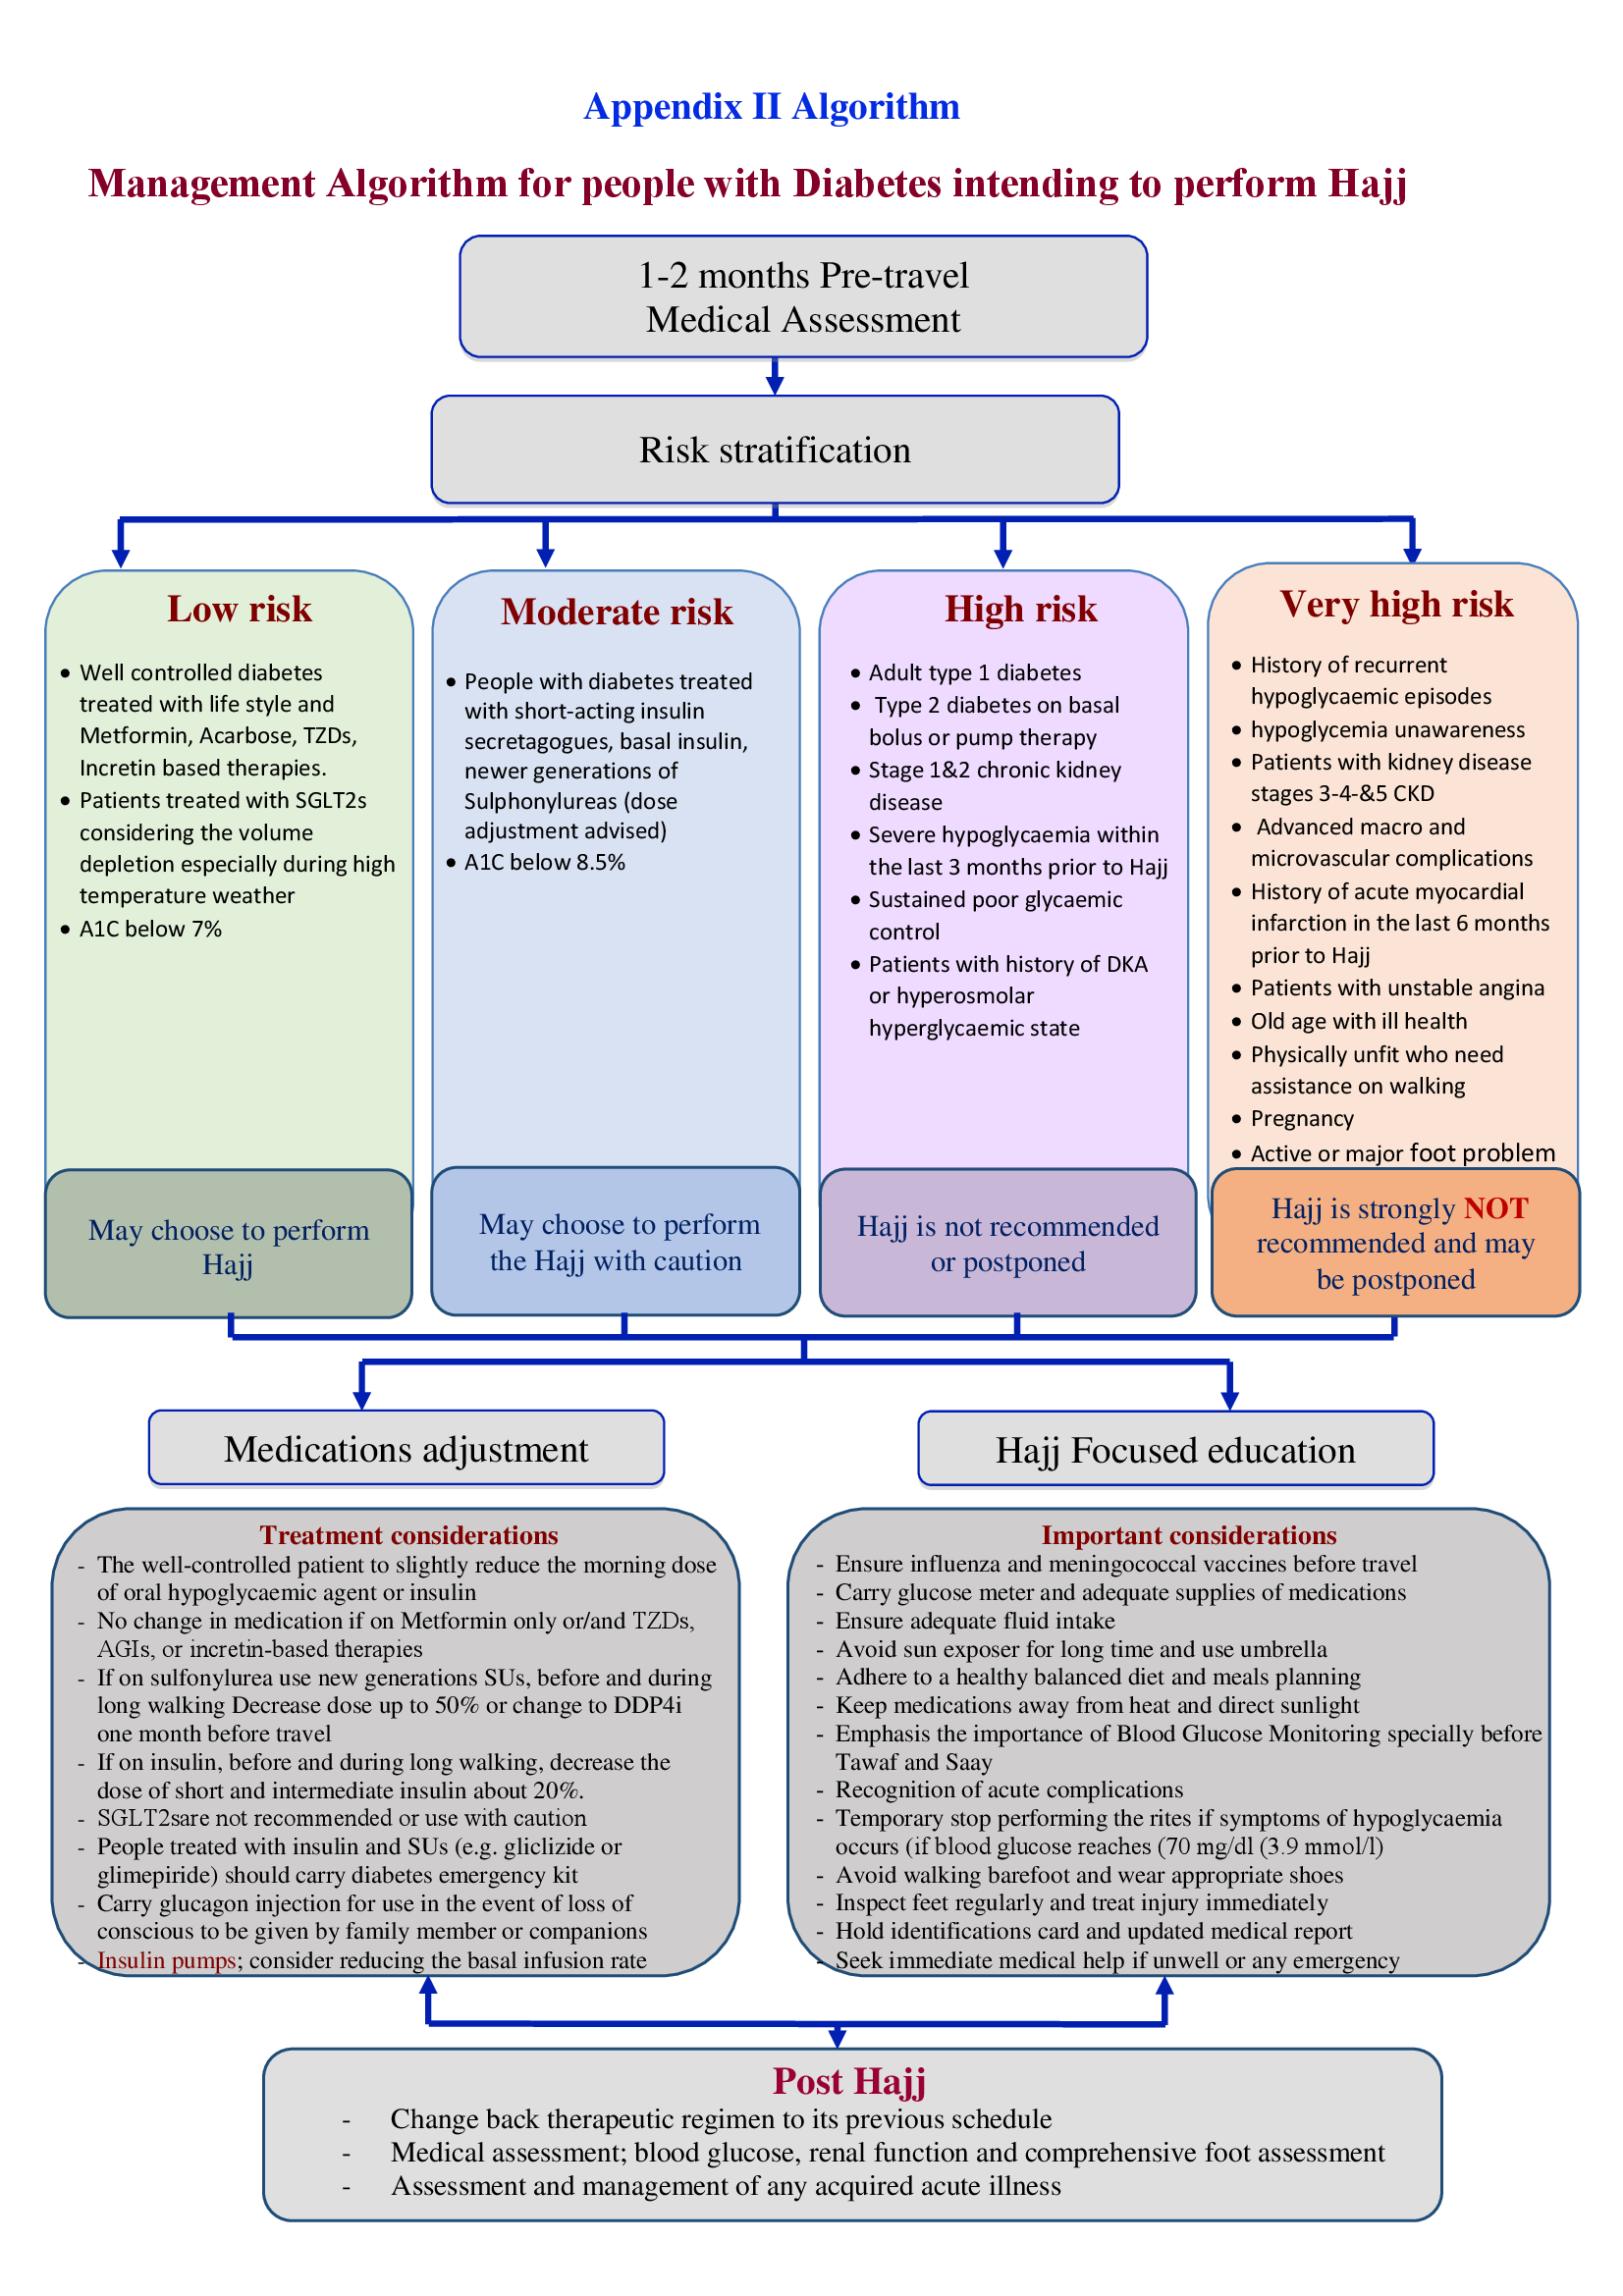 Recommendations for management of diabetes and its complications